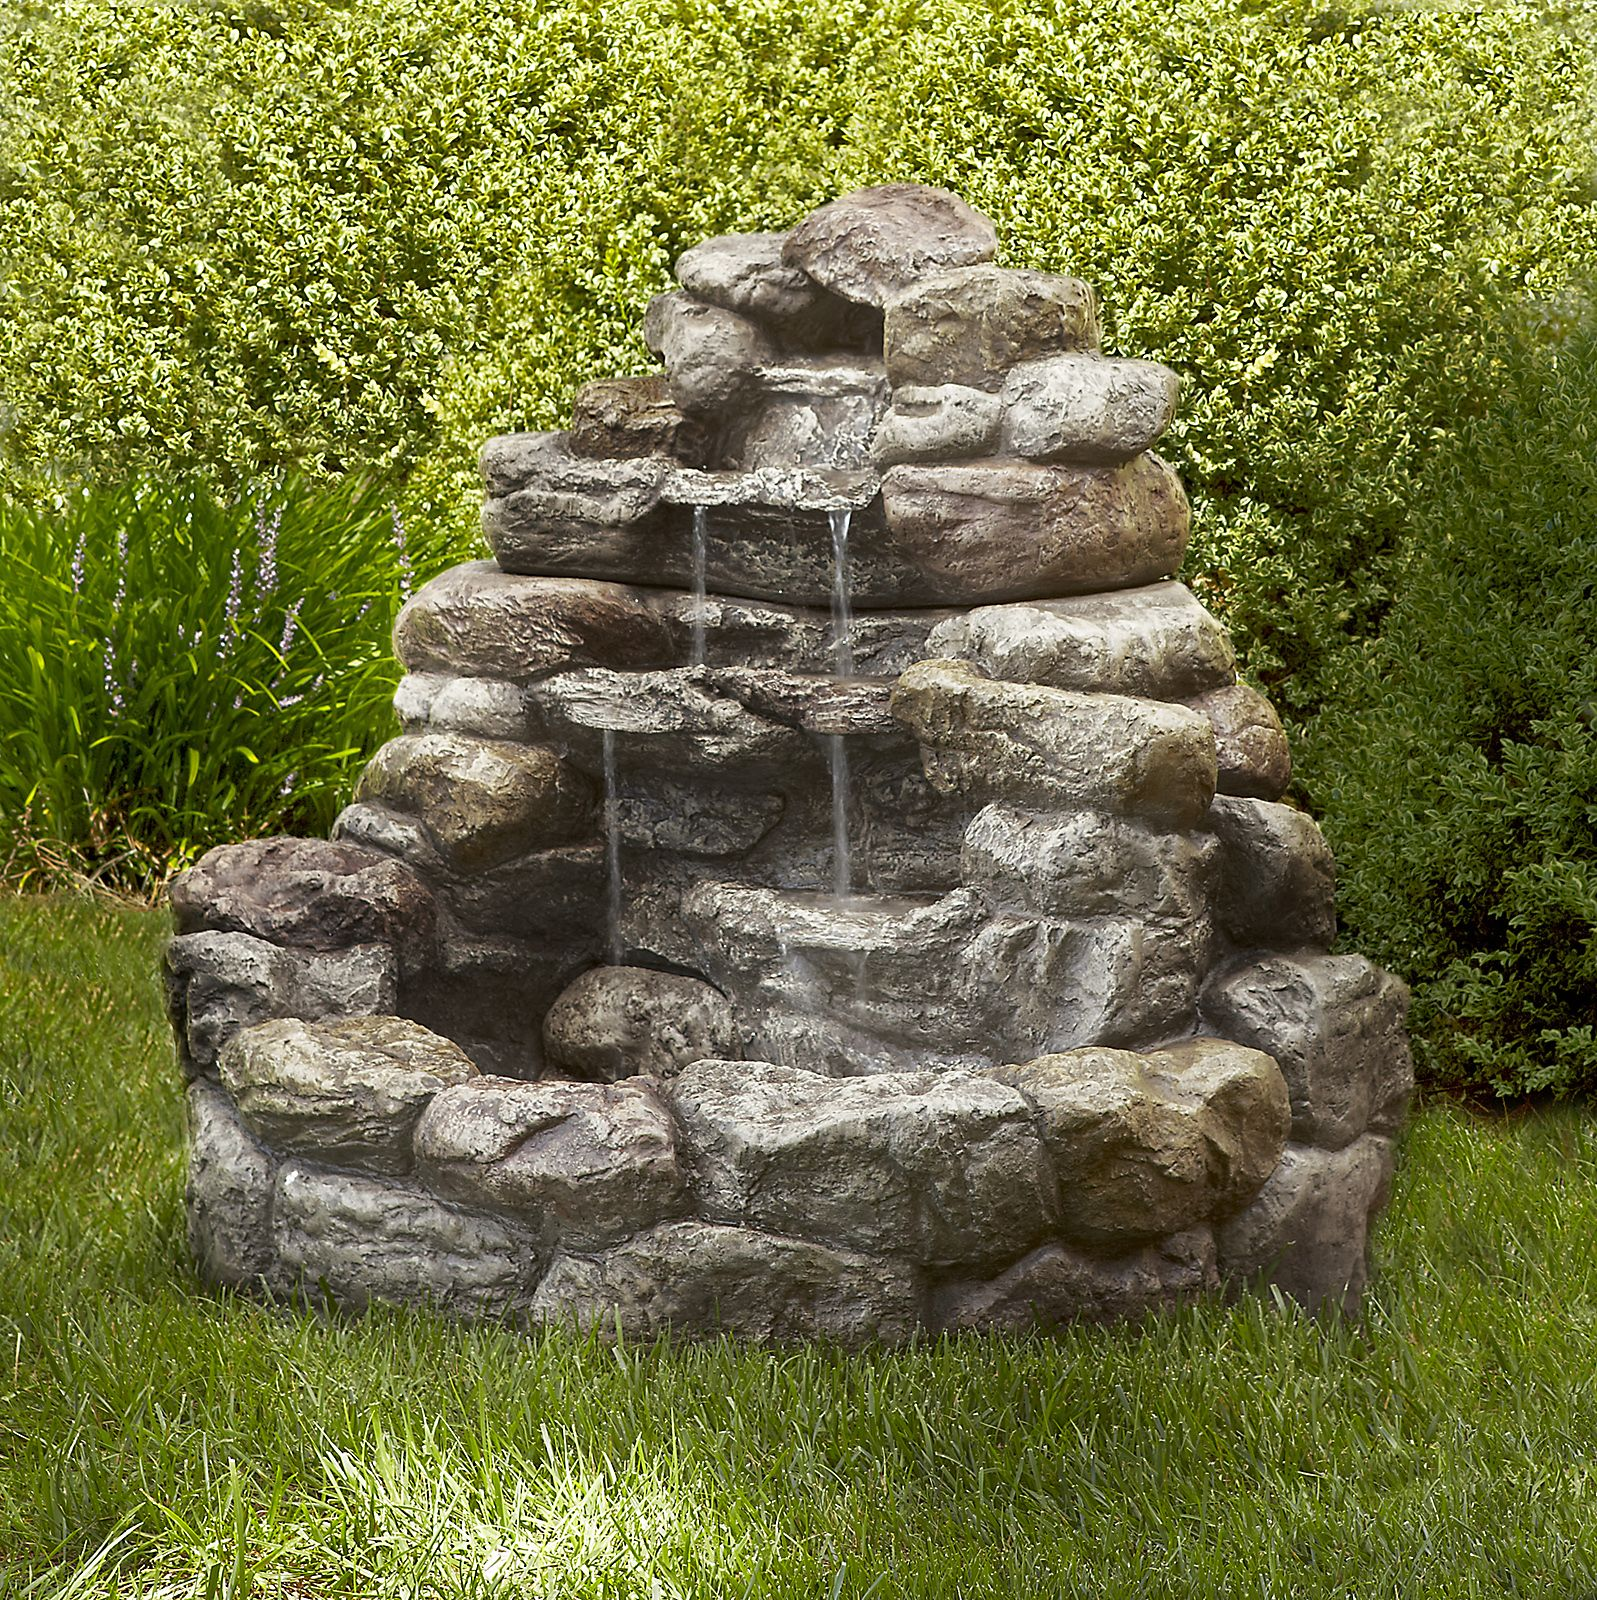 Terrific L Rg Ligh Rock Oun In* Adorable Garden Fountain